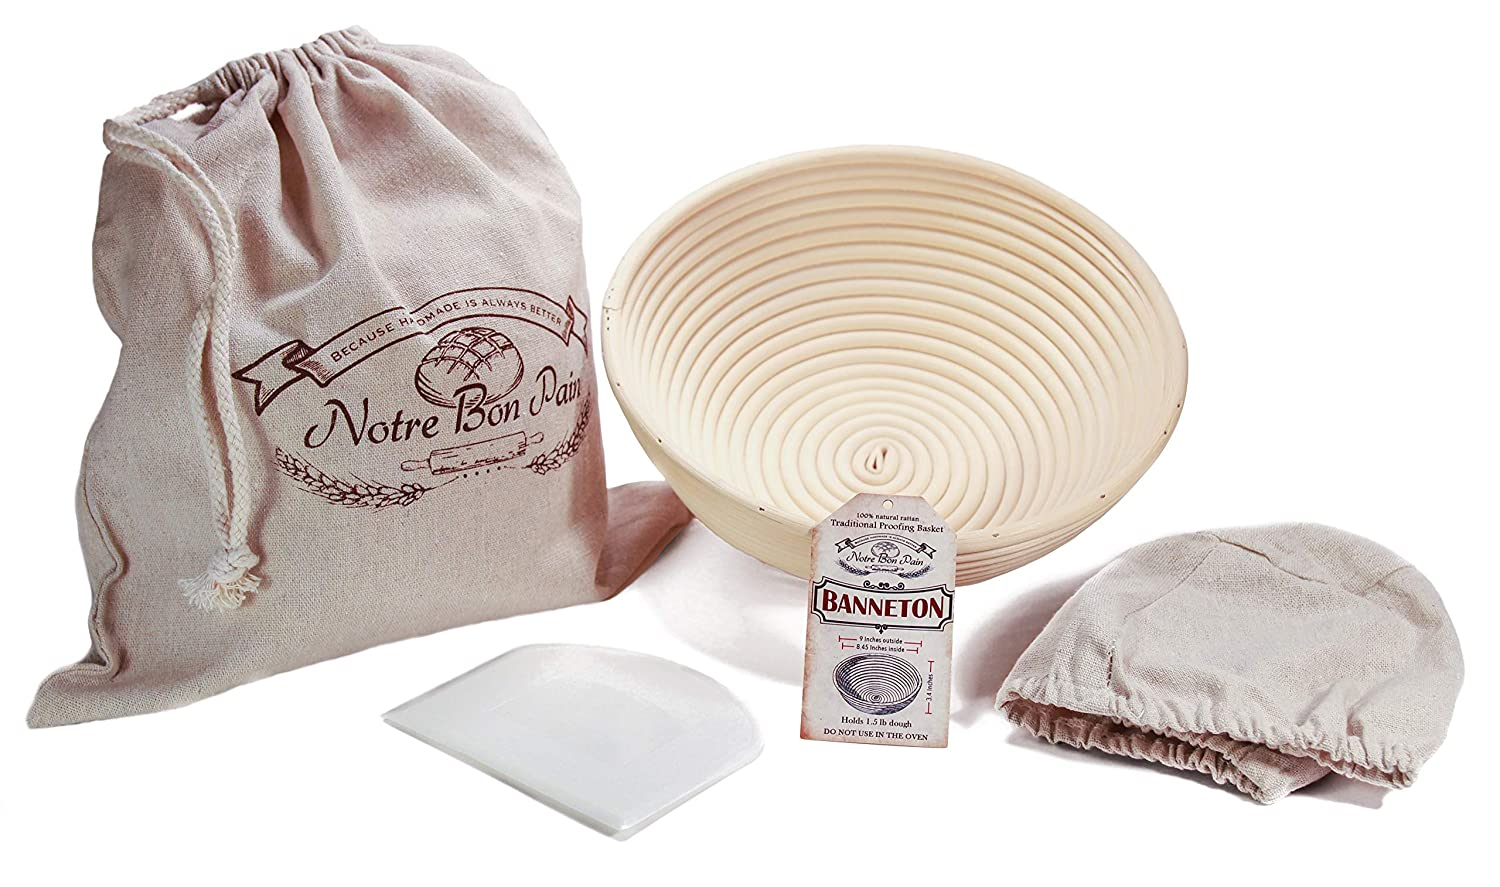 9 inch Banneton Dough Rising Basket for Homemade Crispy Crust Sourdough Loaf –set includes: Round Banneton, Cloth Liner, Dough Scraper, Hand-printed Bread Bag -Brotform Shape Baked Boules Handcrafted and more